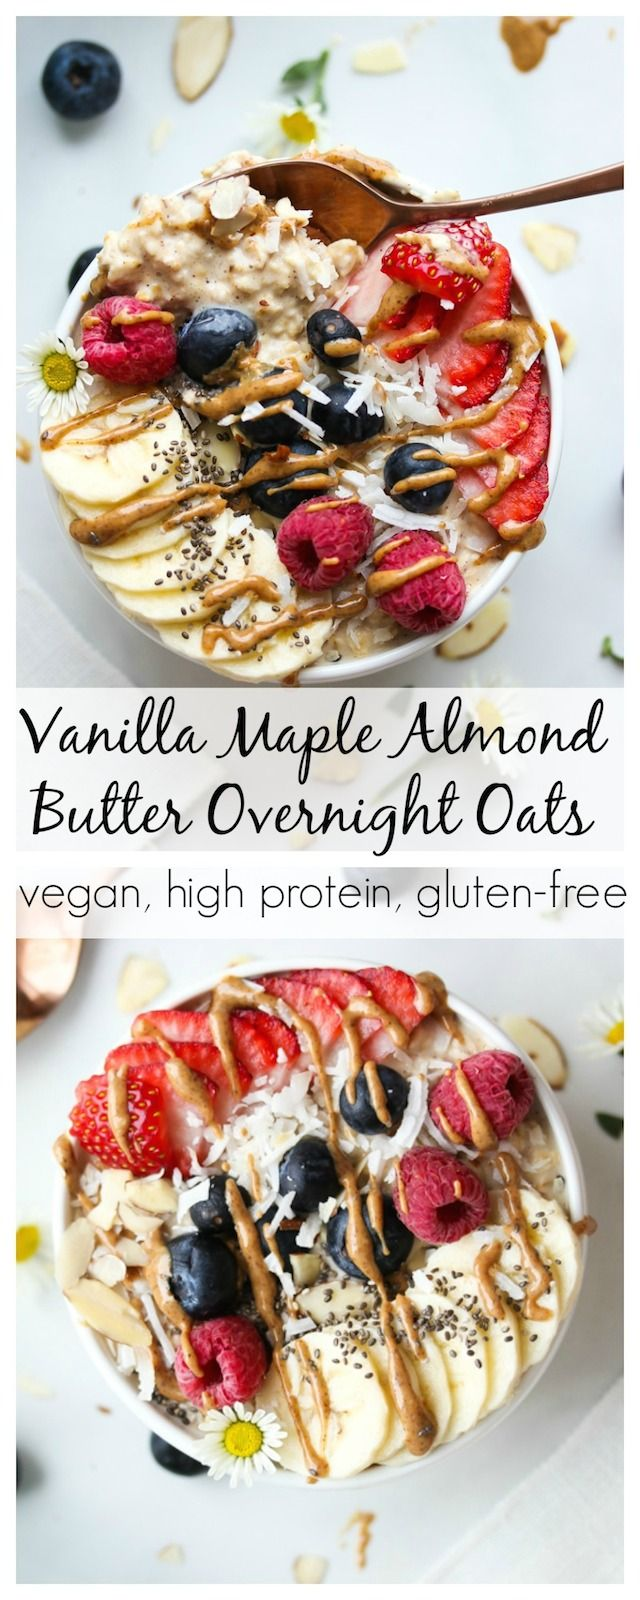 Easy and Simple Vanilla Maple Almond Butter Overnight Oats made with only 5 ingredients! Healthy, gluten-free and dairy-free. | dishingouthealth.com